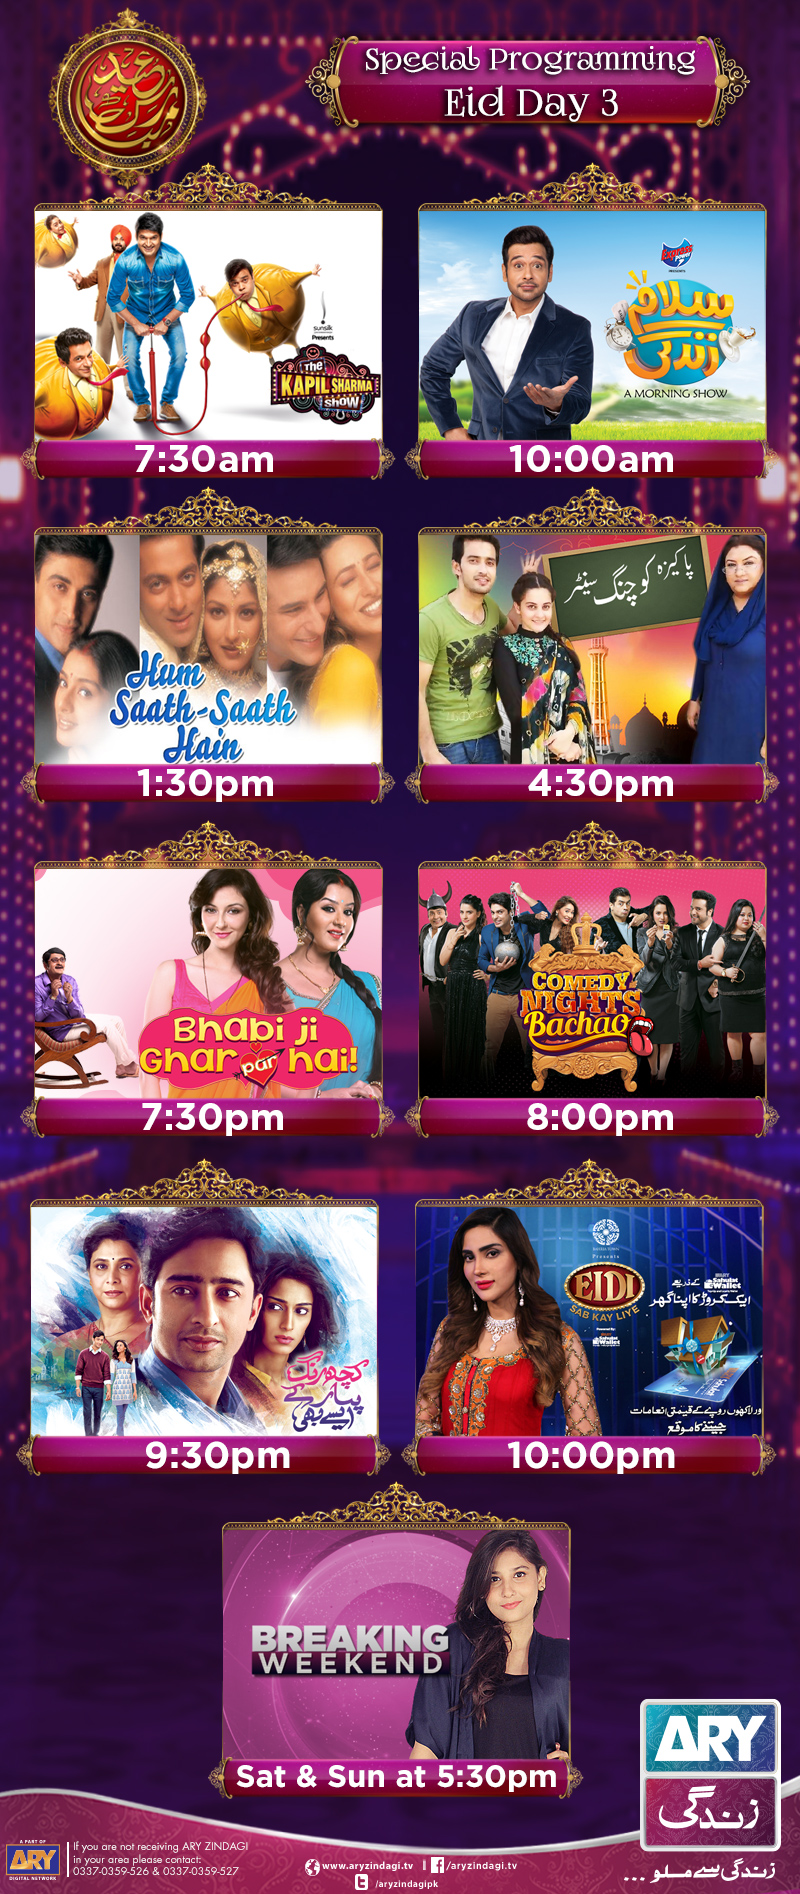 [Press Release] ARY Digital and ARY Zindagi brings exciting programs for Eid 2016 (6)